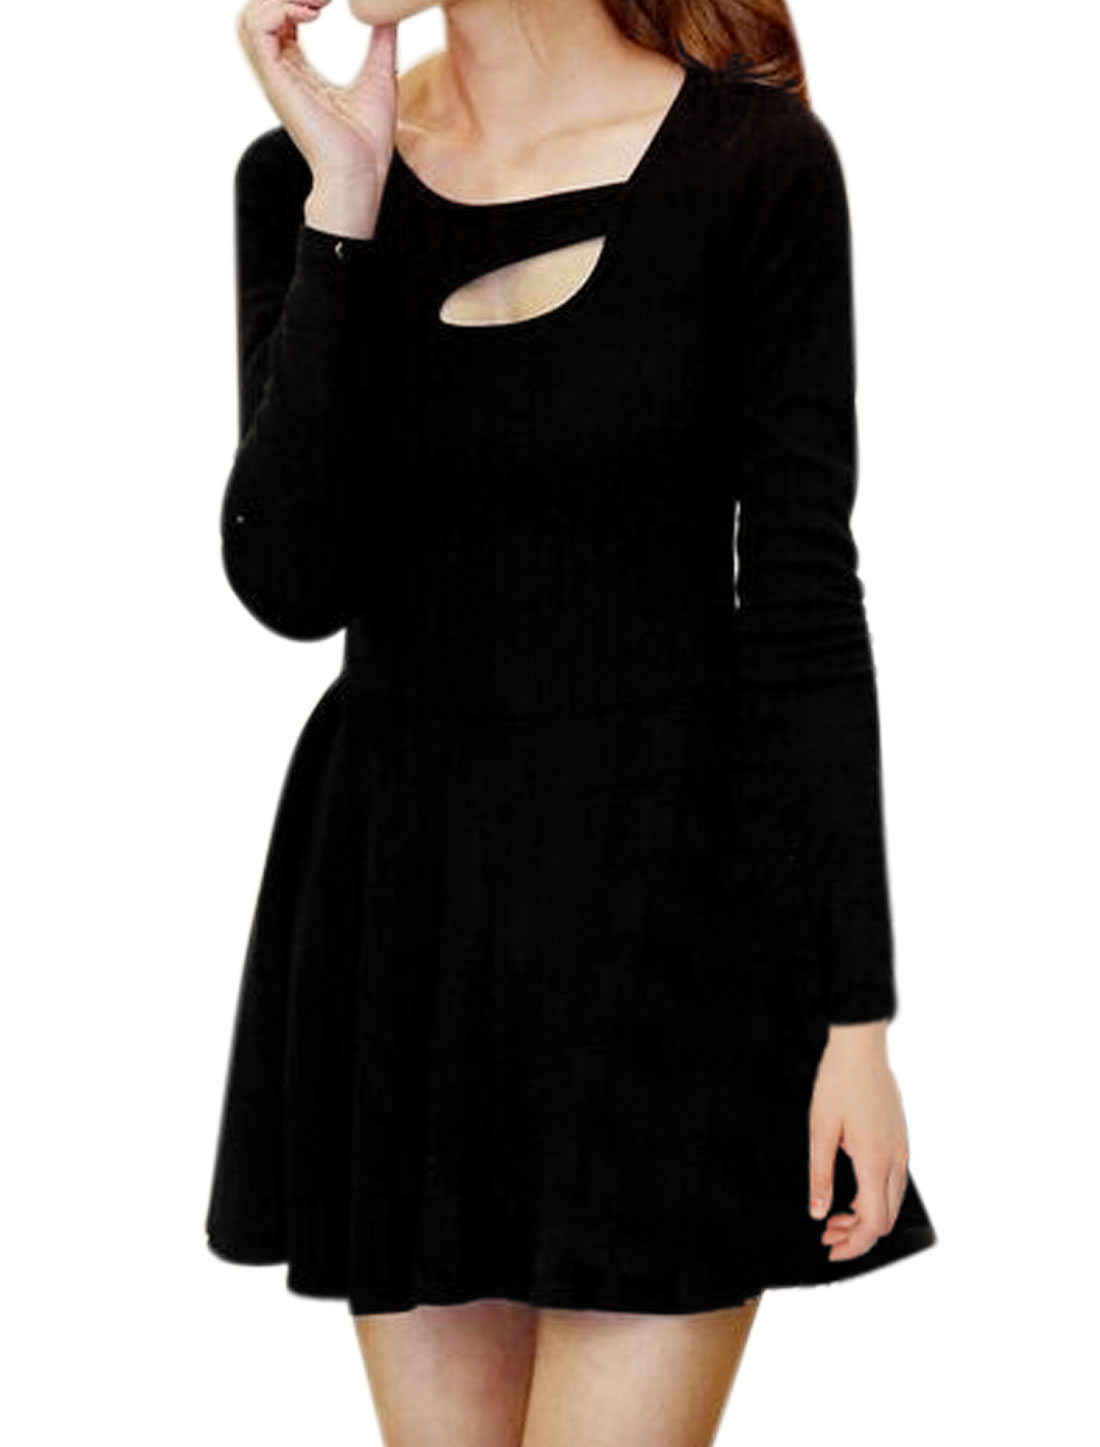 Women Asymmetric Neck Long Sleeves Cut Out Front Tunic Dress Black M